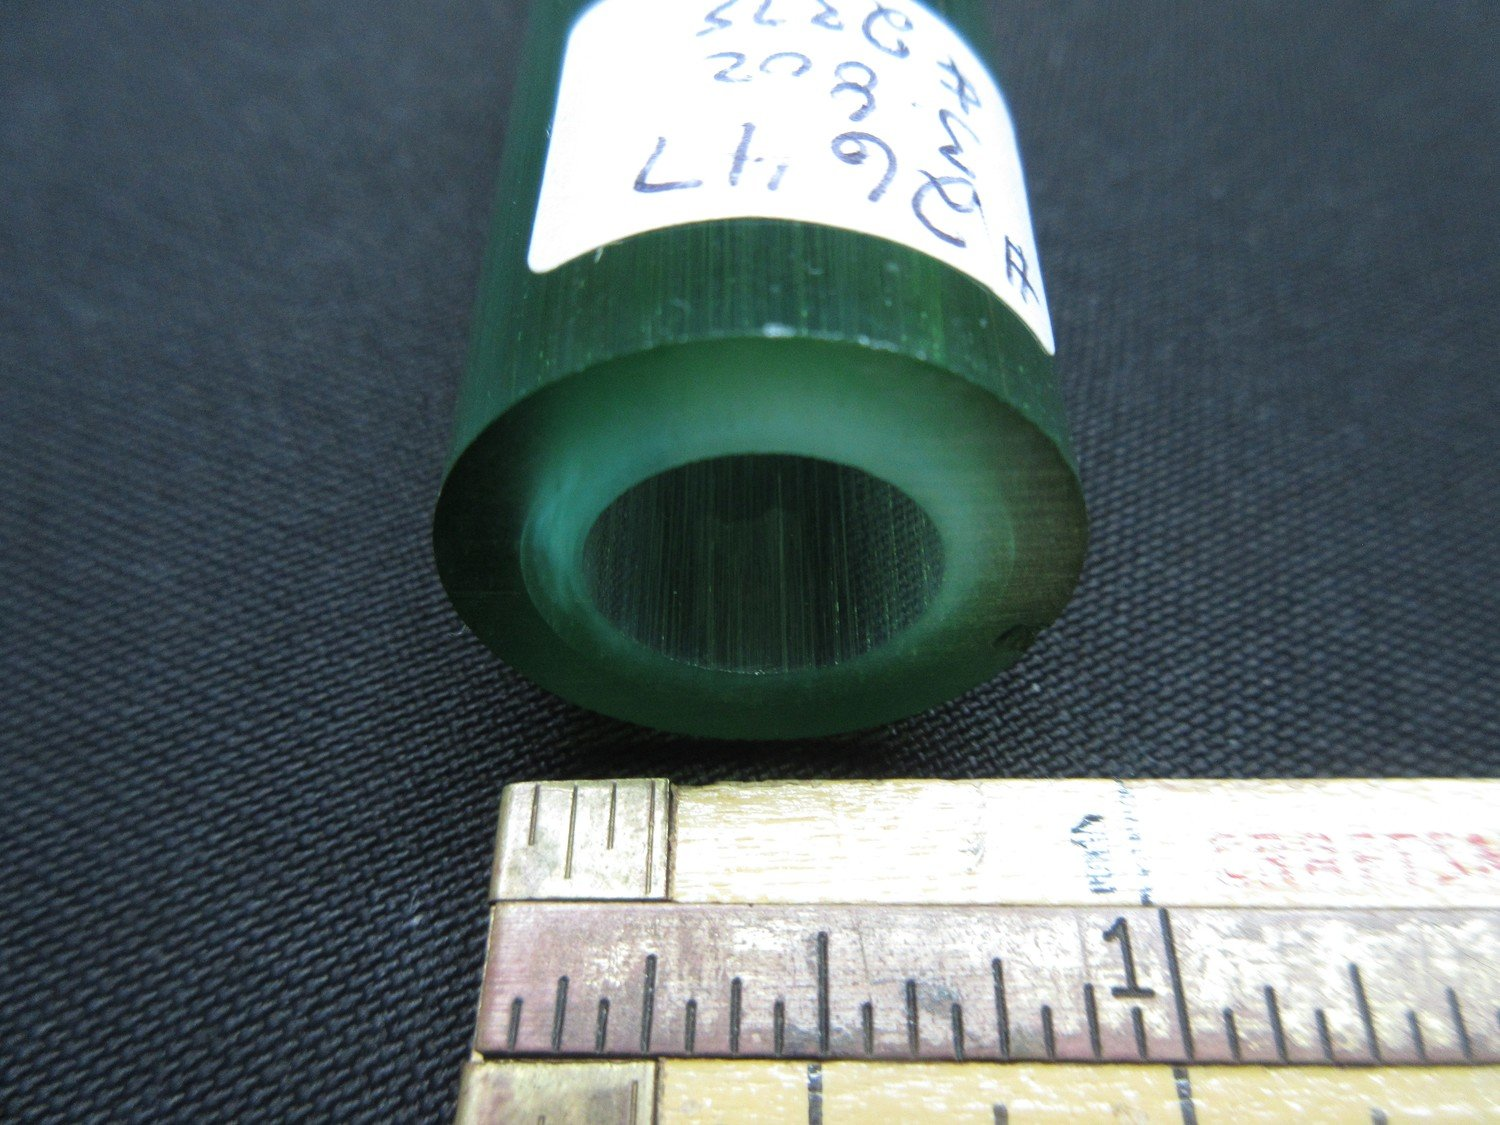 Green Stardust over Slyrm Double Layer Boro Tubing (#2647 3.8oz  SECONDS)